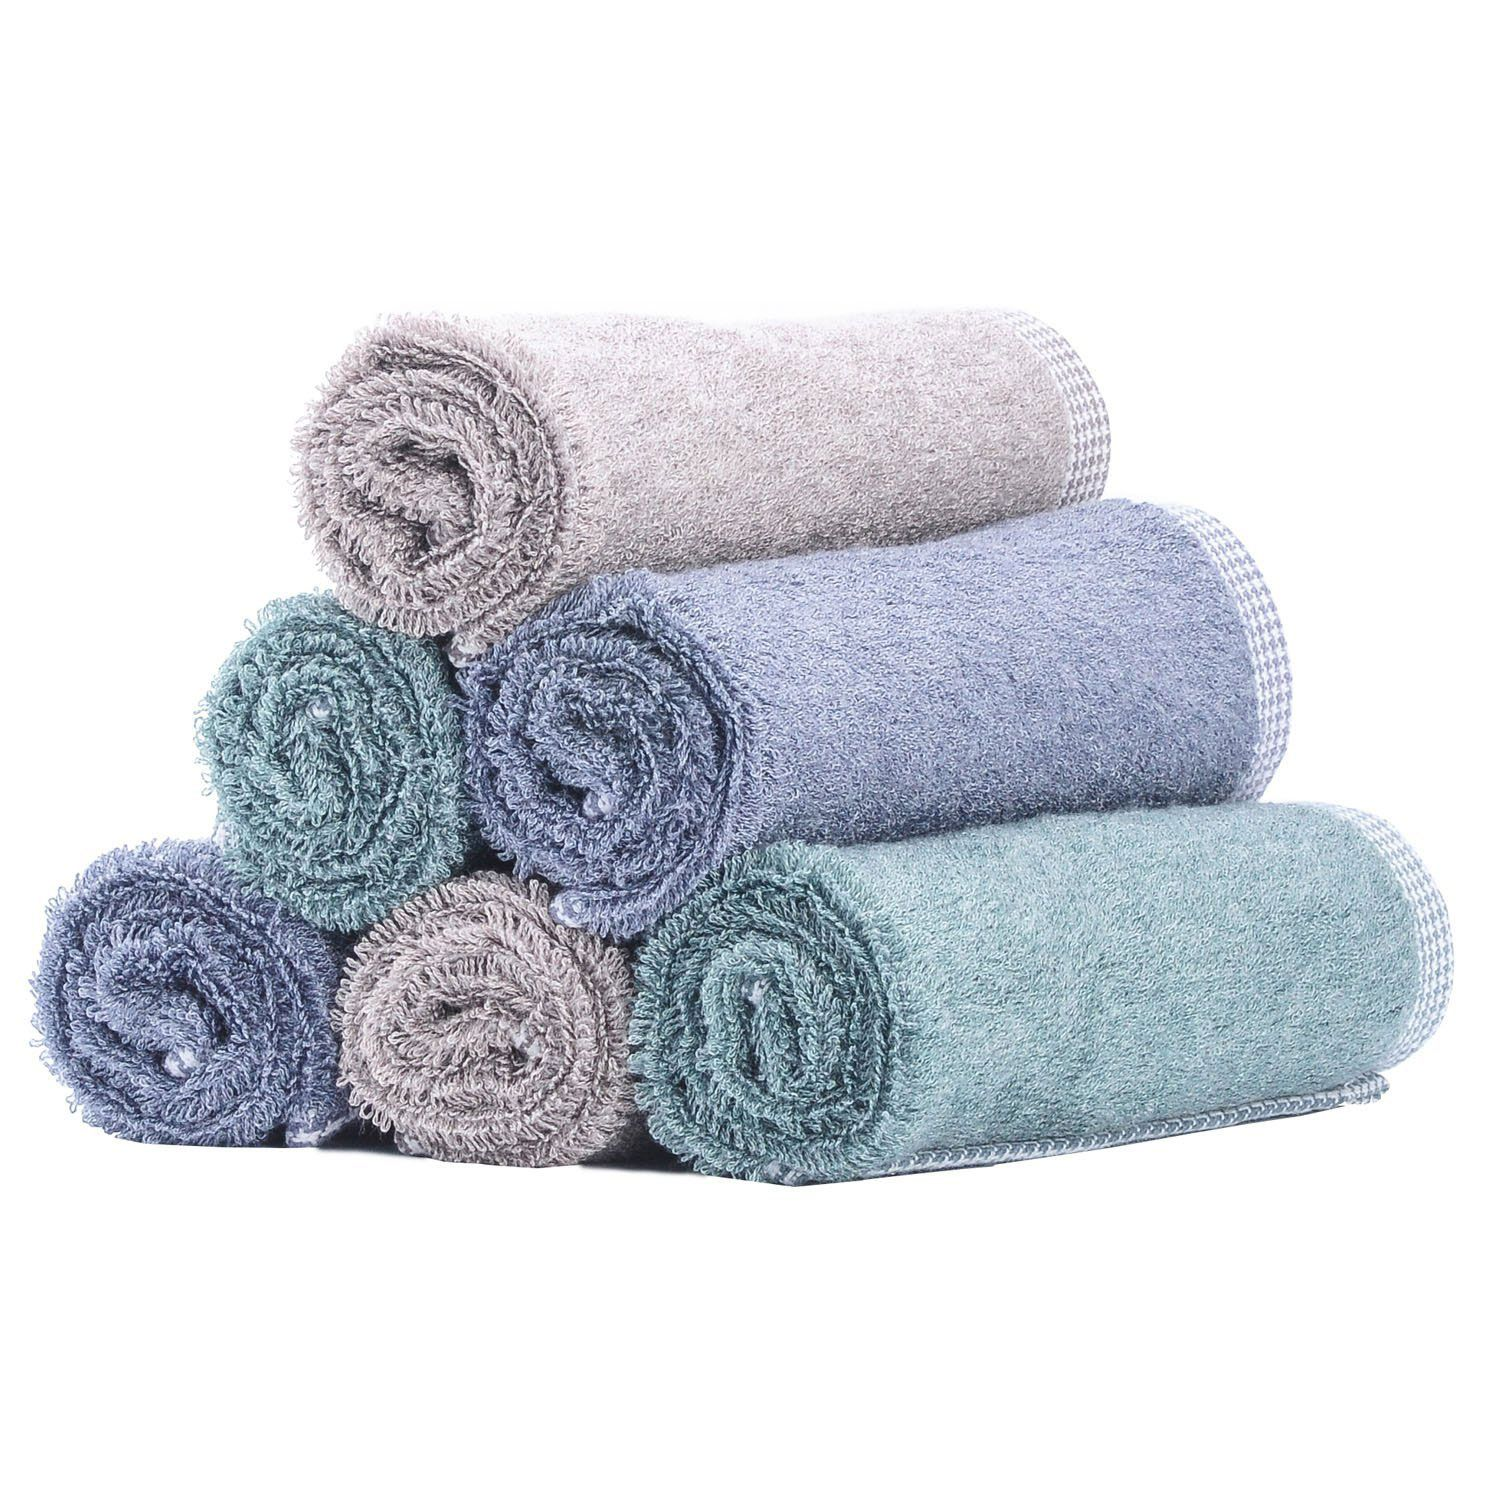 How To Wash Bamboo Clothes And Fabrics